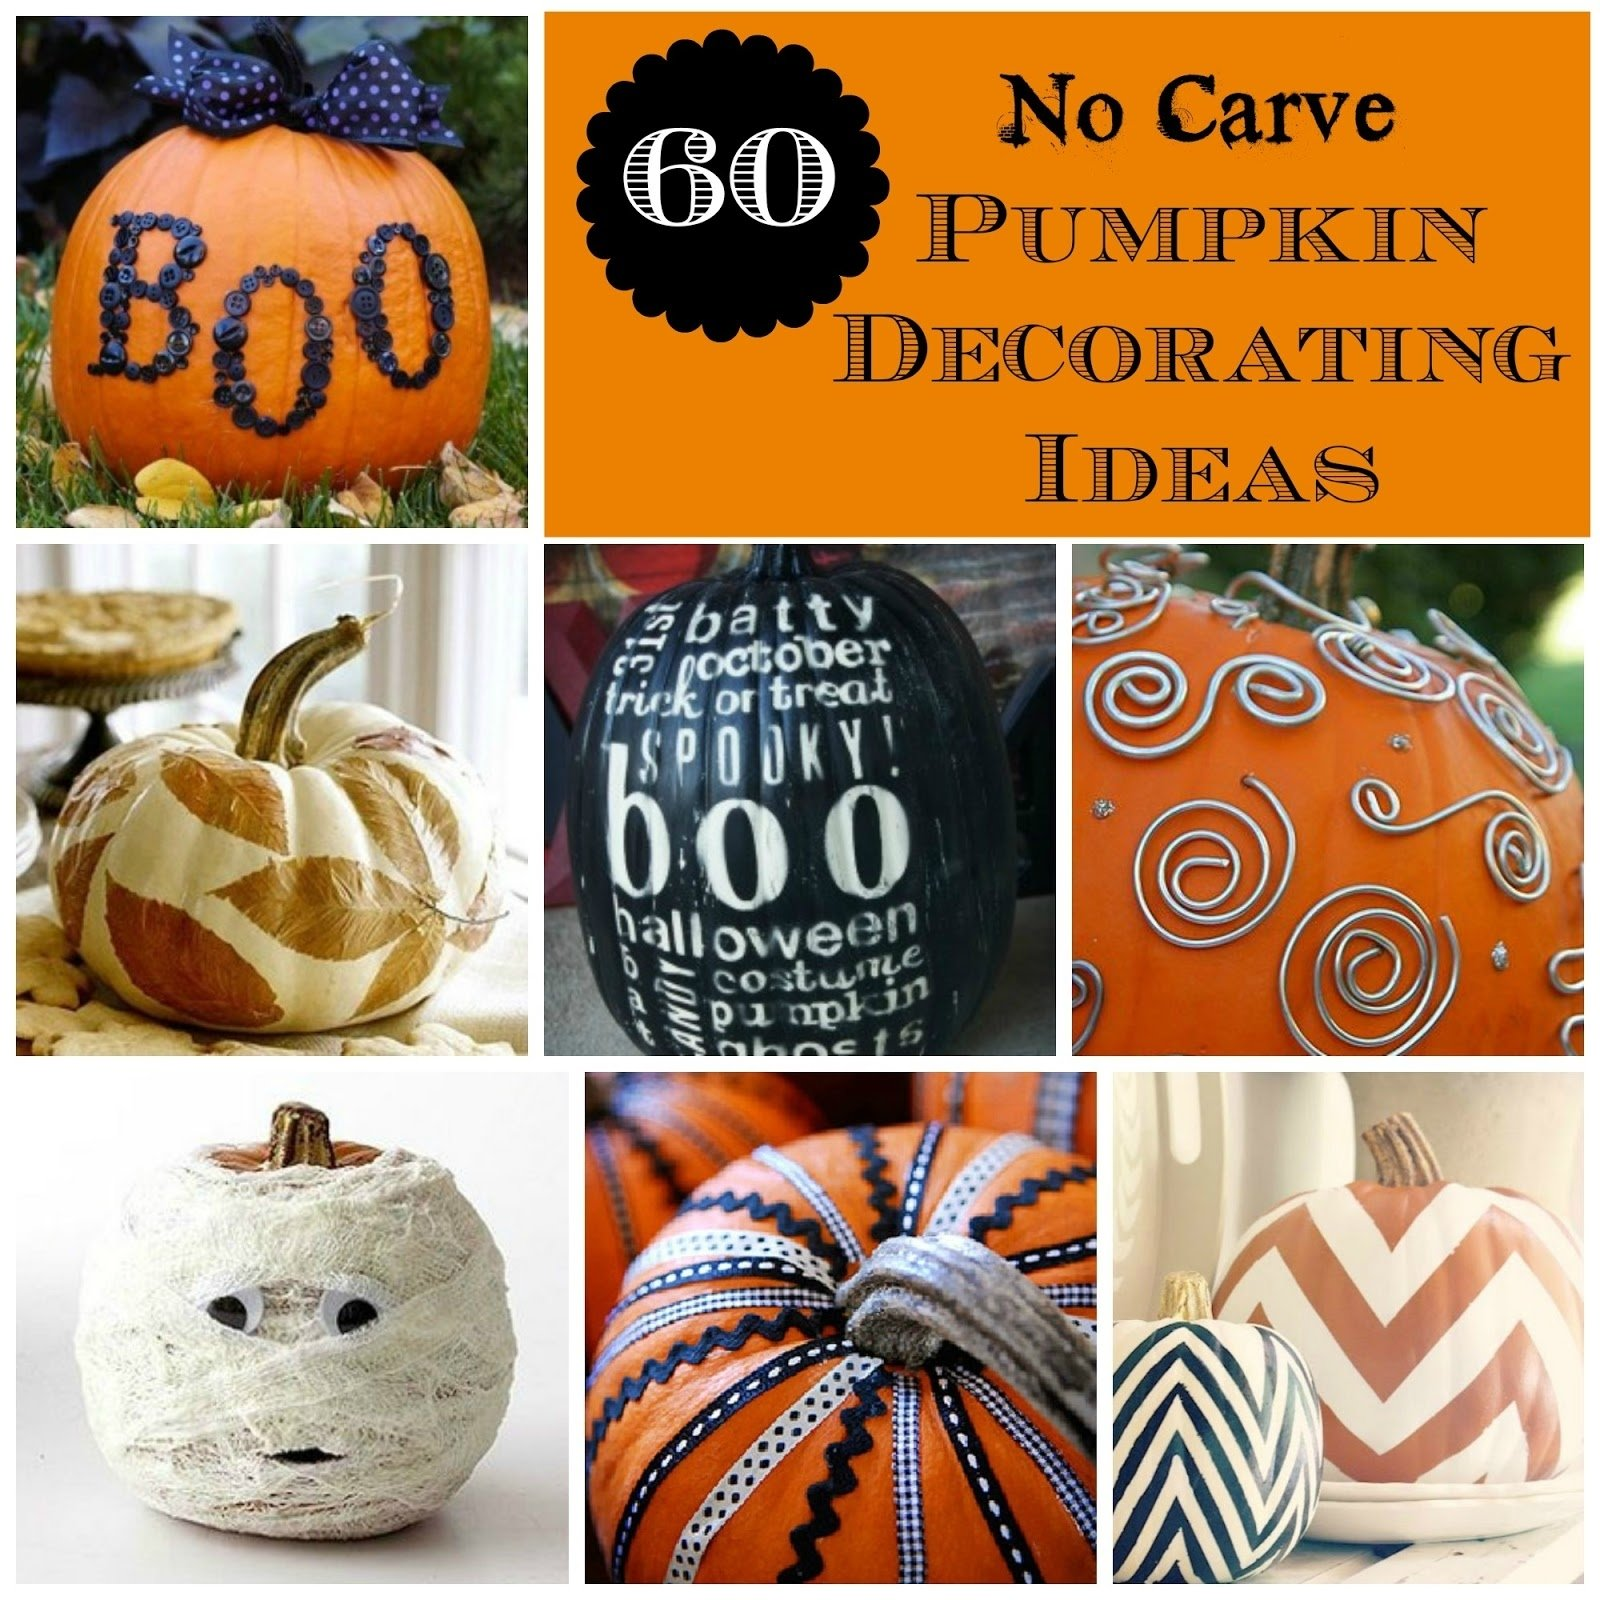 10 Famous No Carve Pumpkin Decorating Ideas all things katie marie 60 no carve pumpkin decorating ideas 2